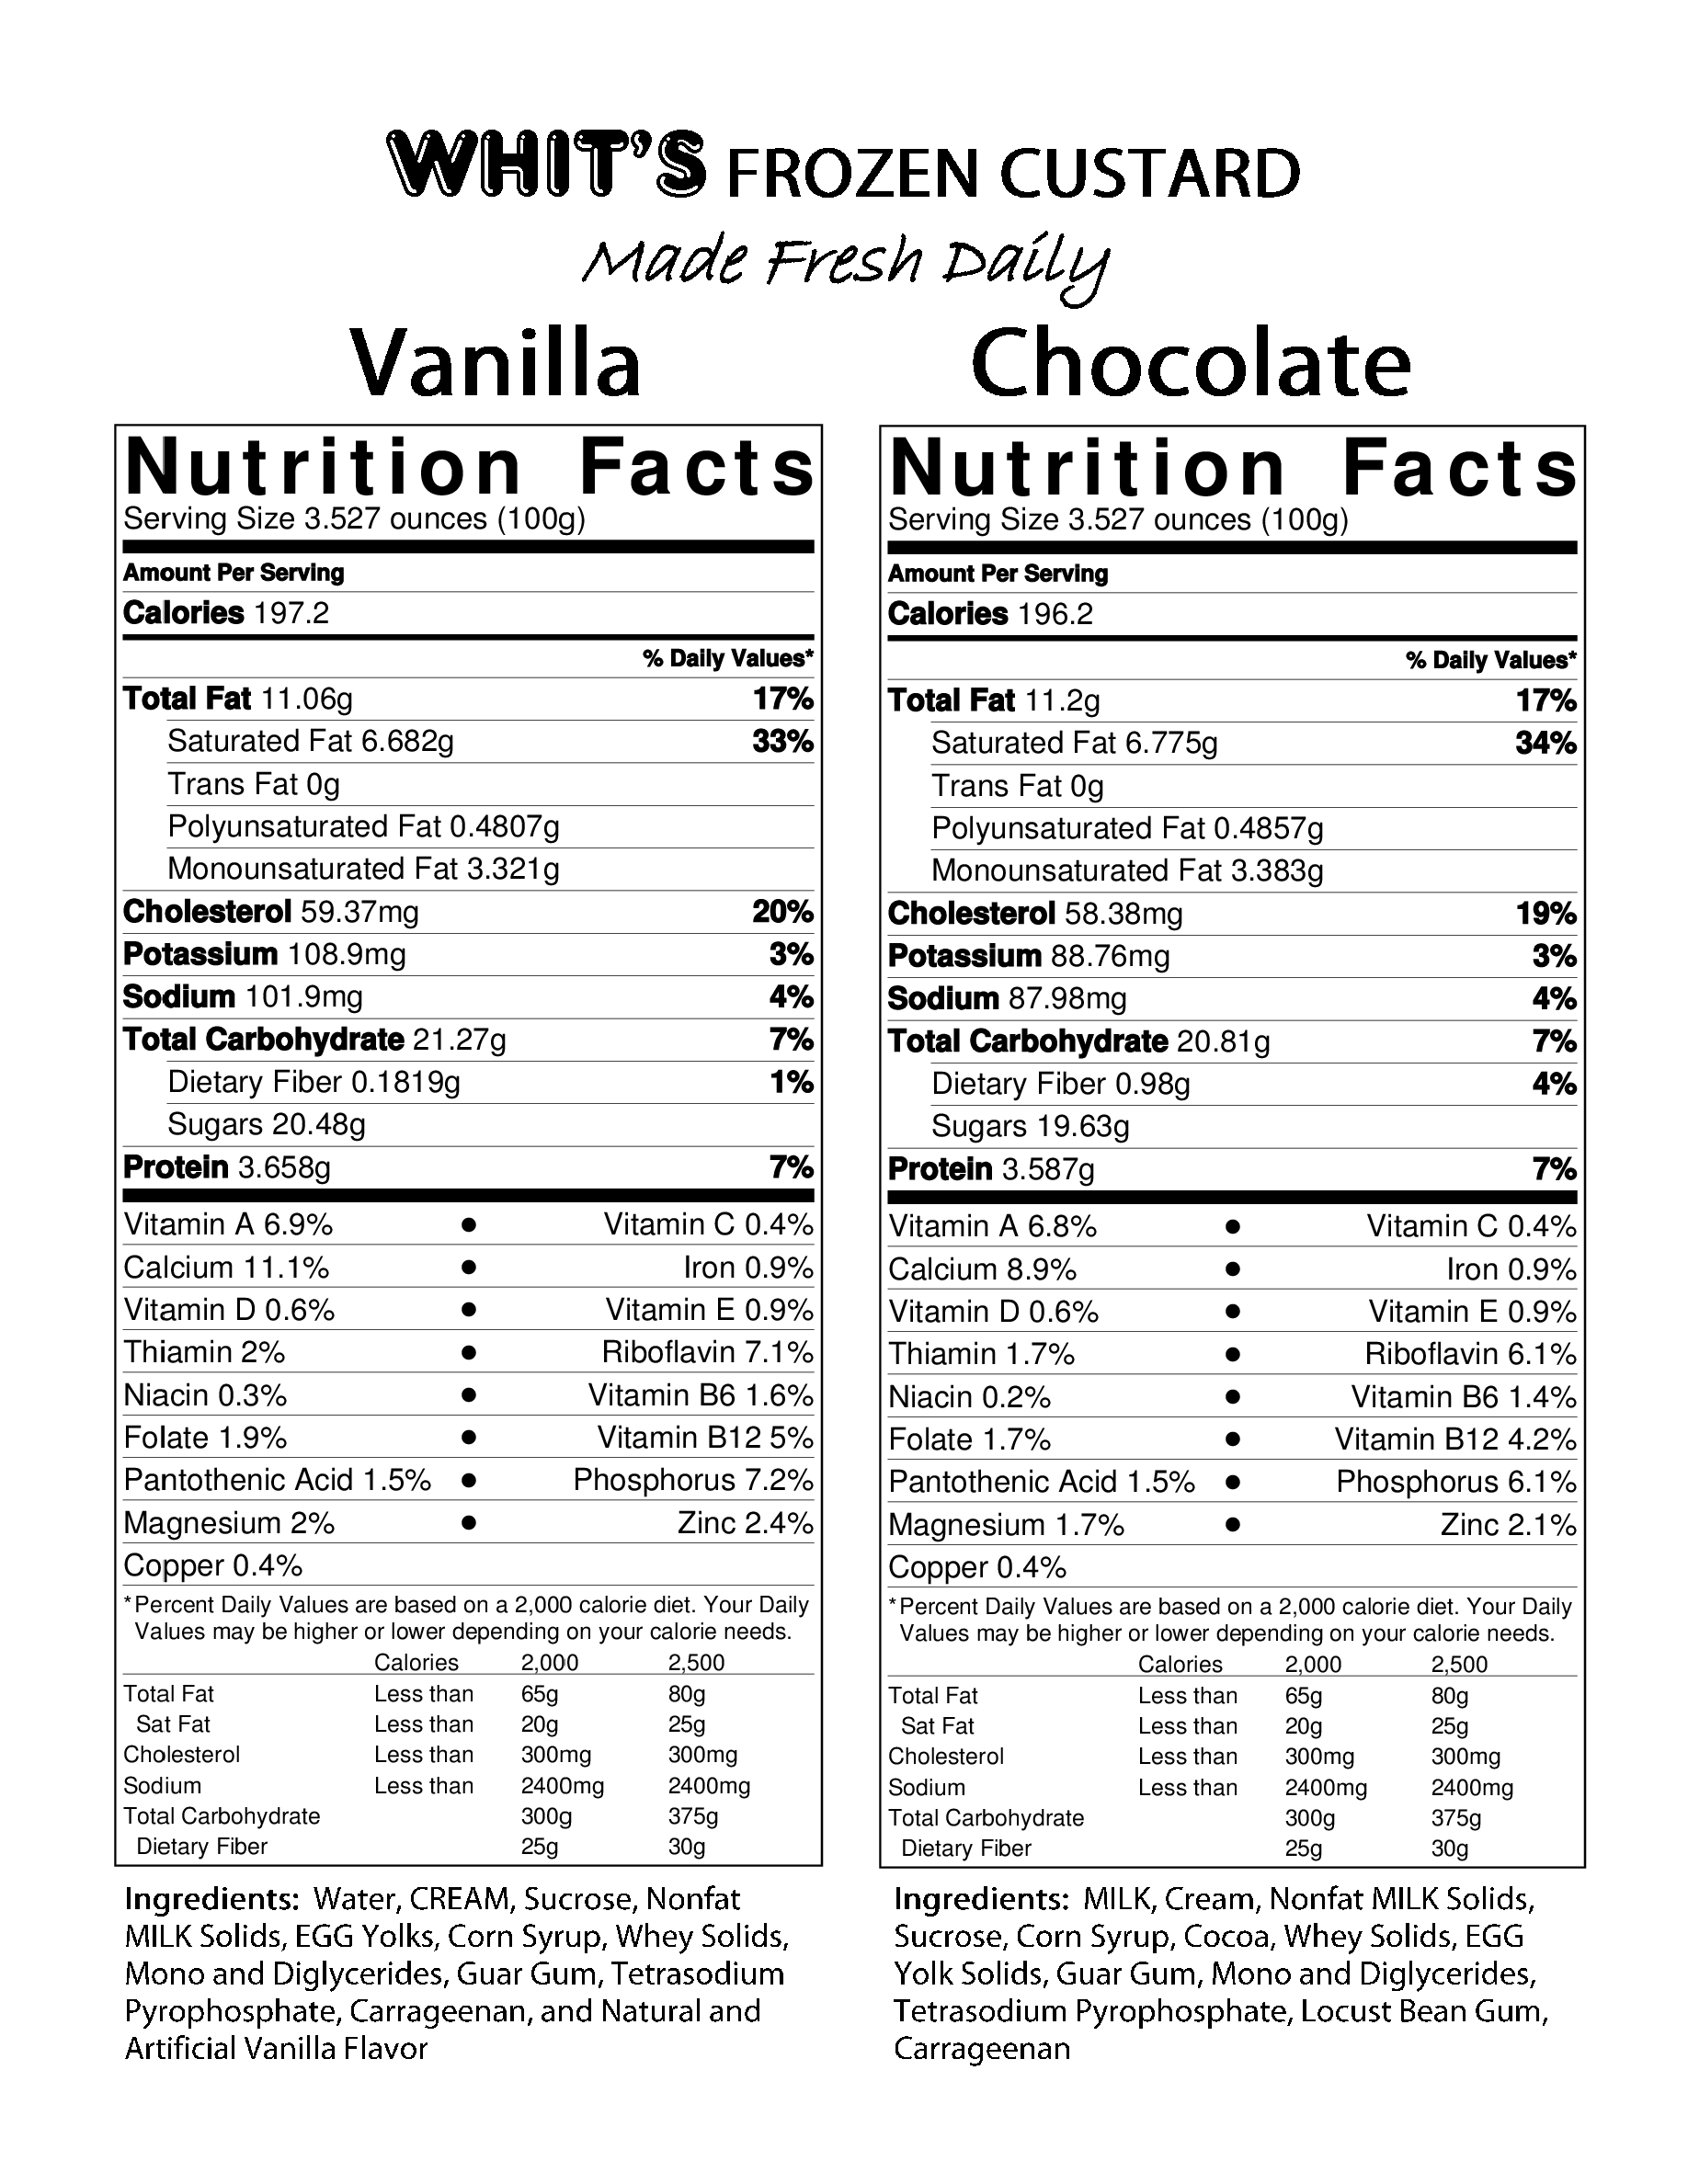 Vanilla-Chocolate-NSA Nutrition Label Customer View-1.png